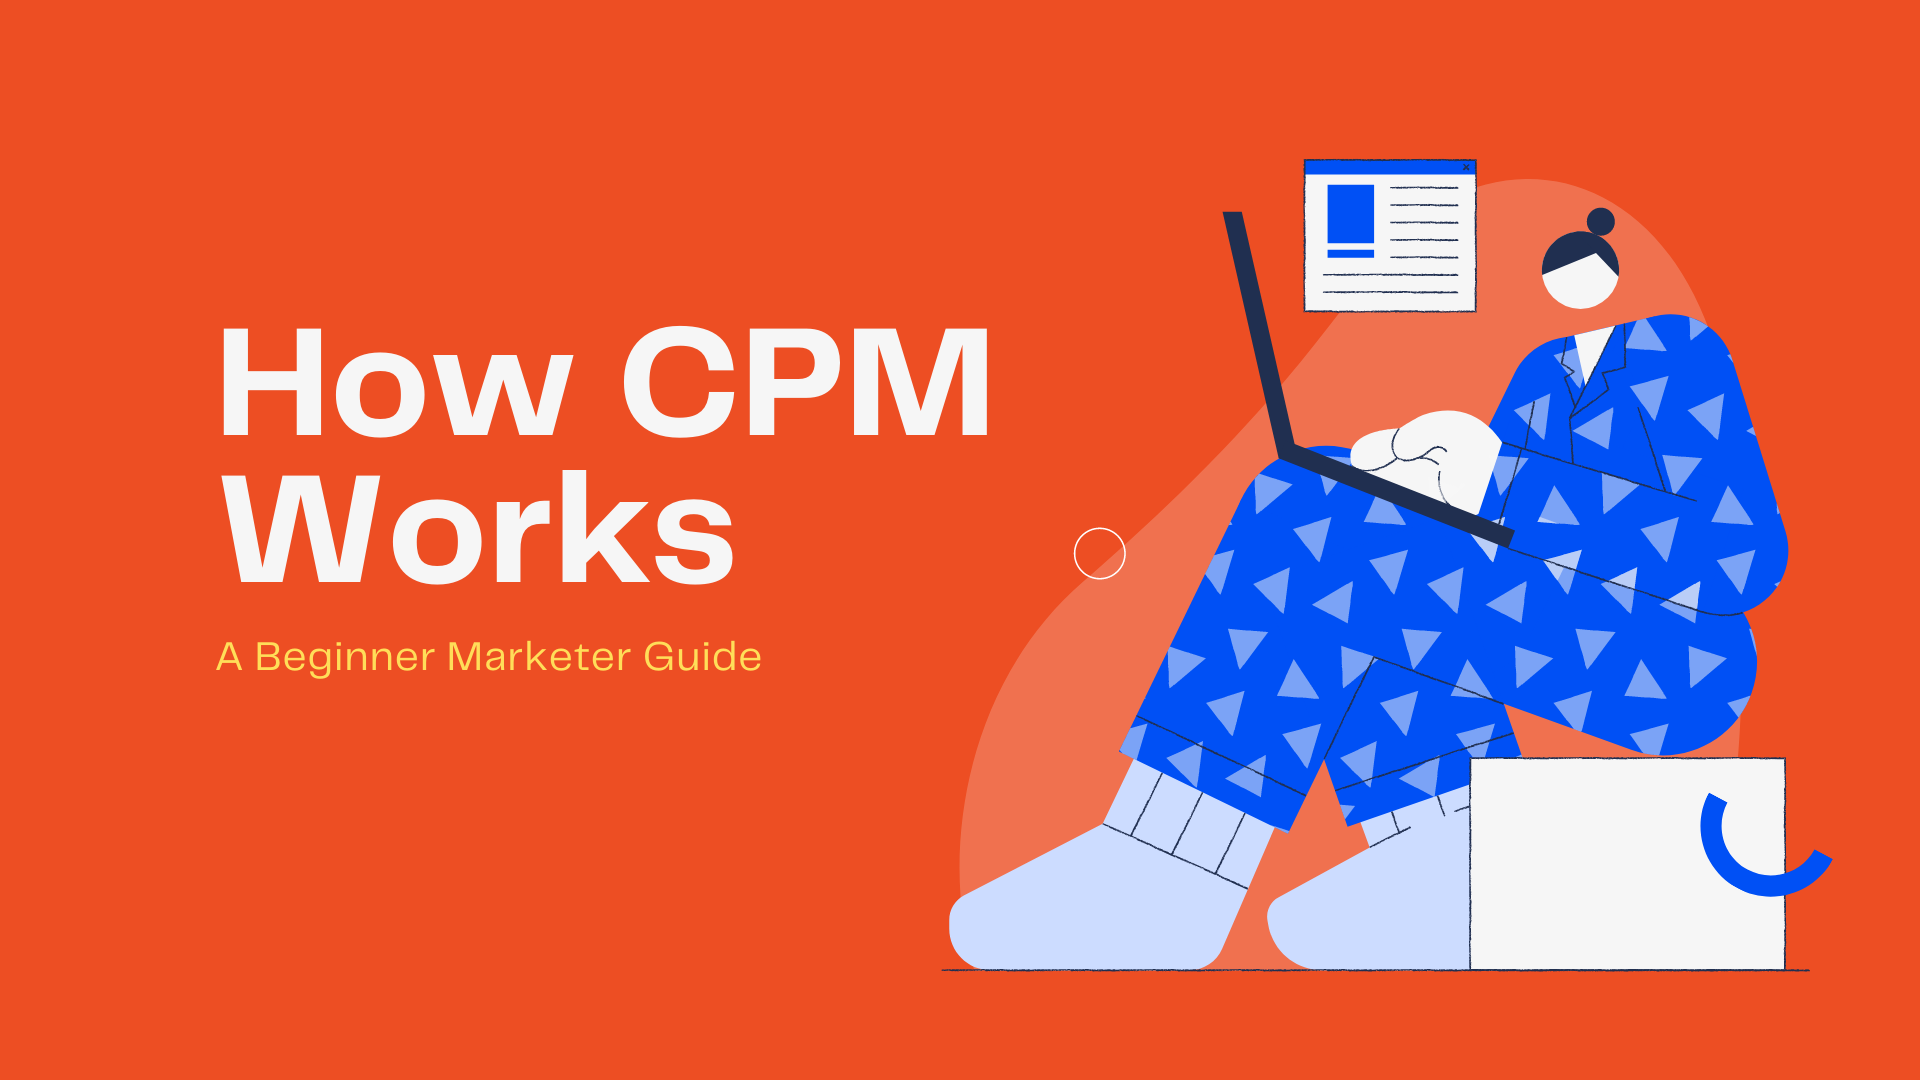 What does CPM mean?